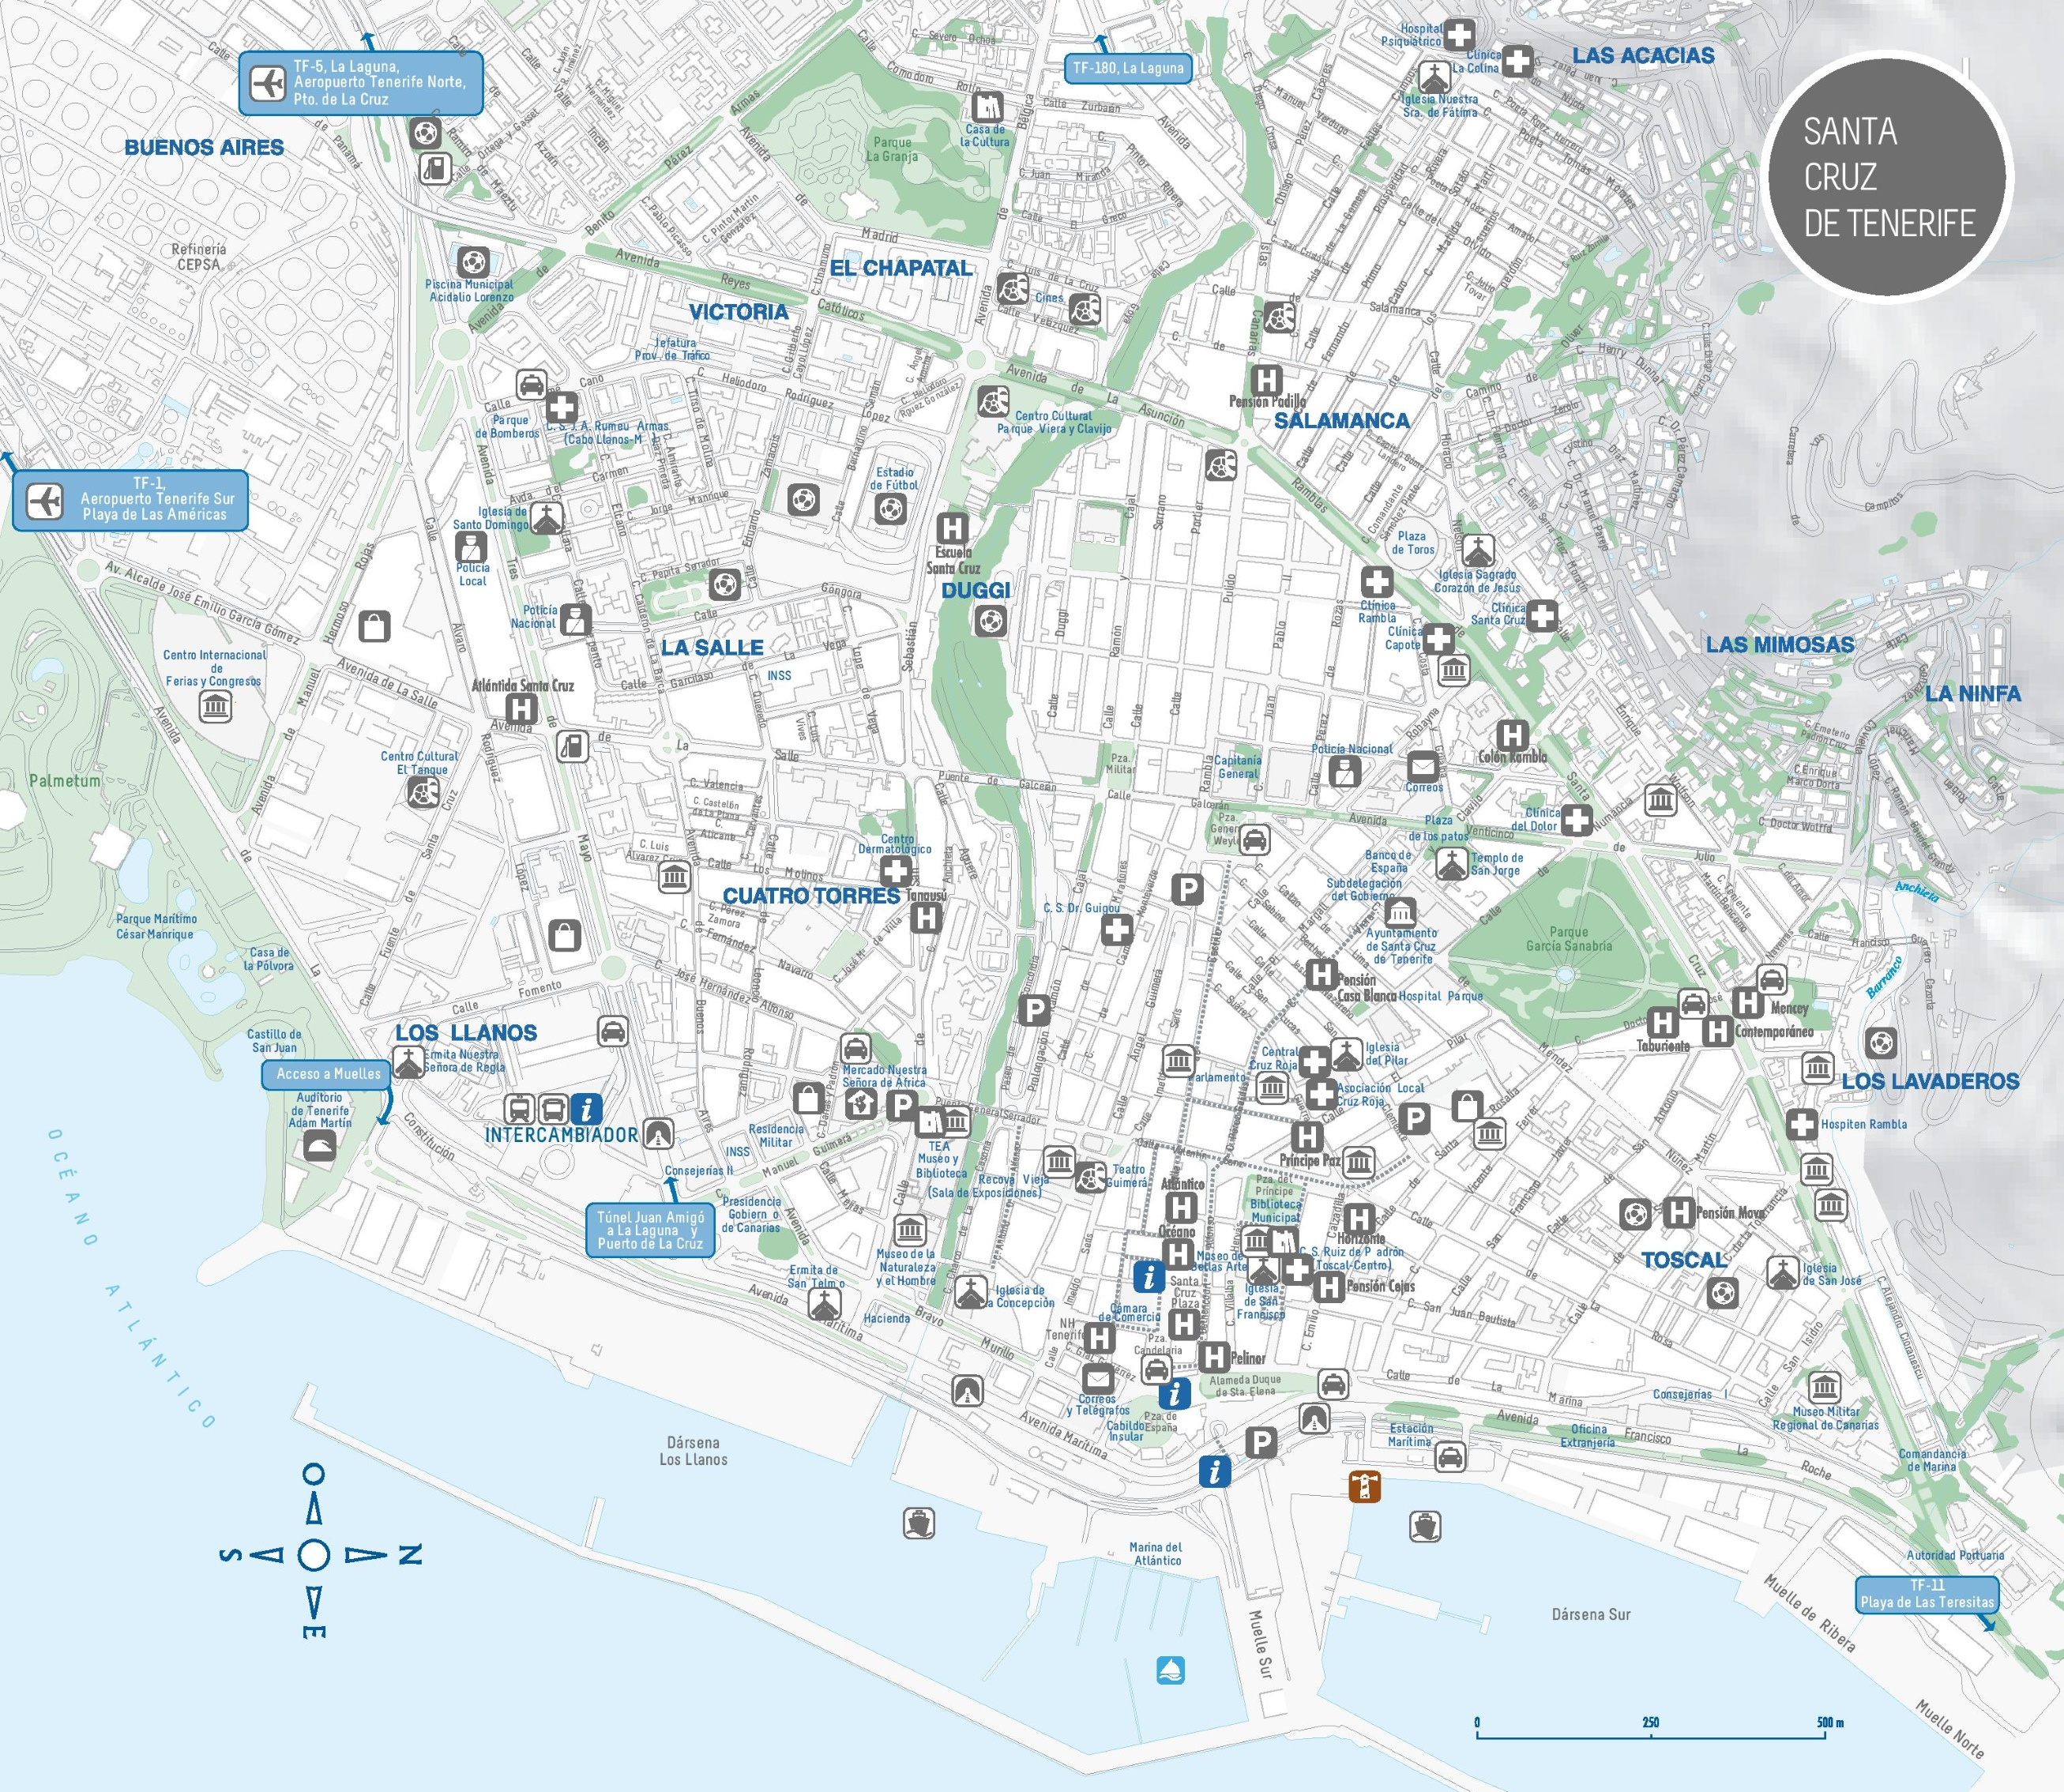 Santa Cruz de Tenerife sightseeing map